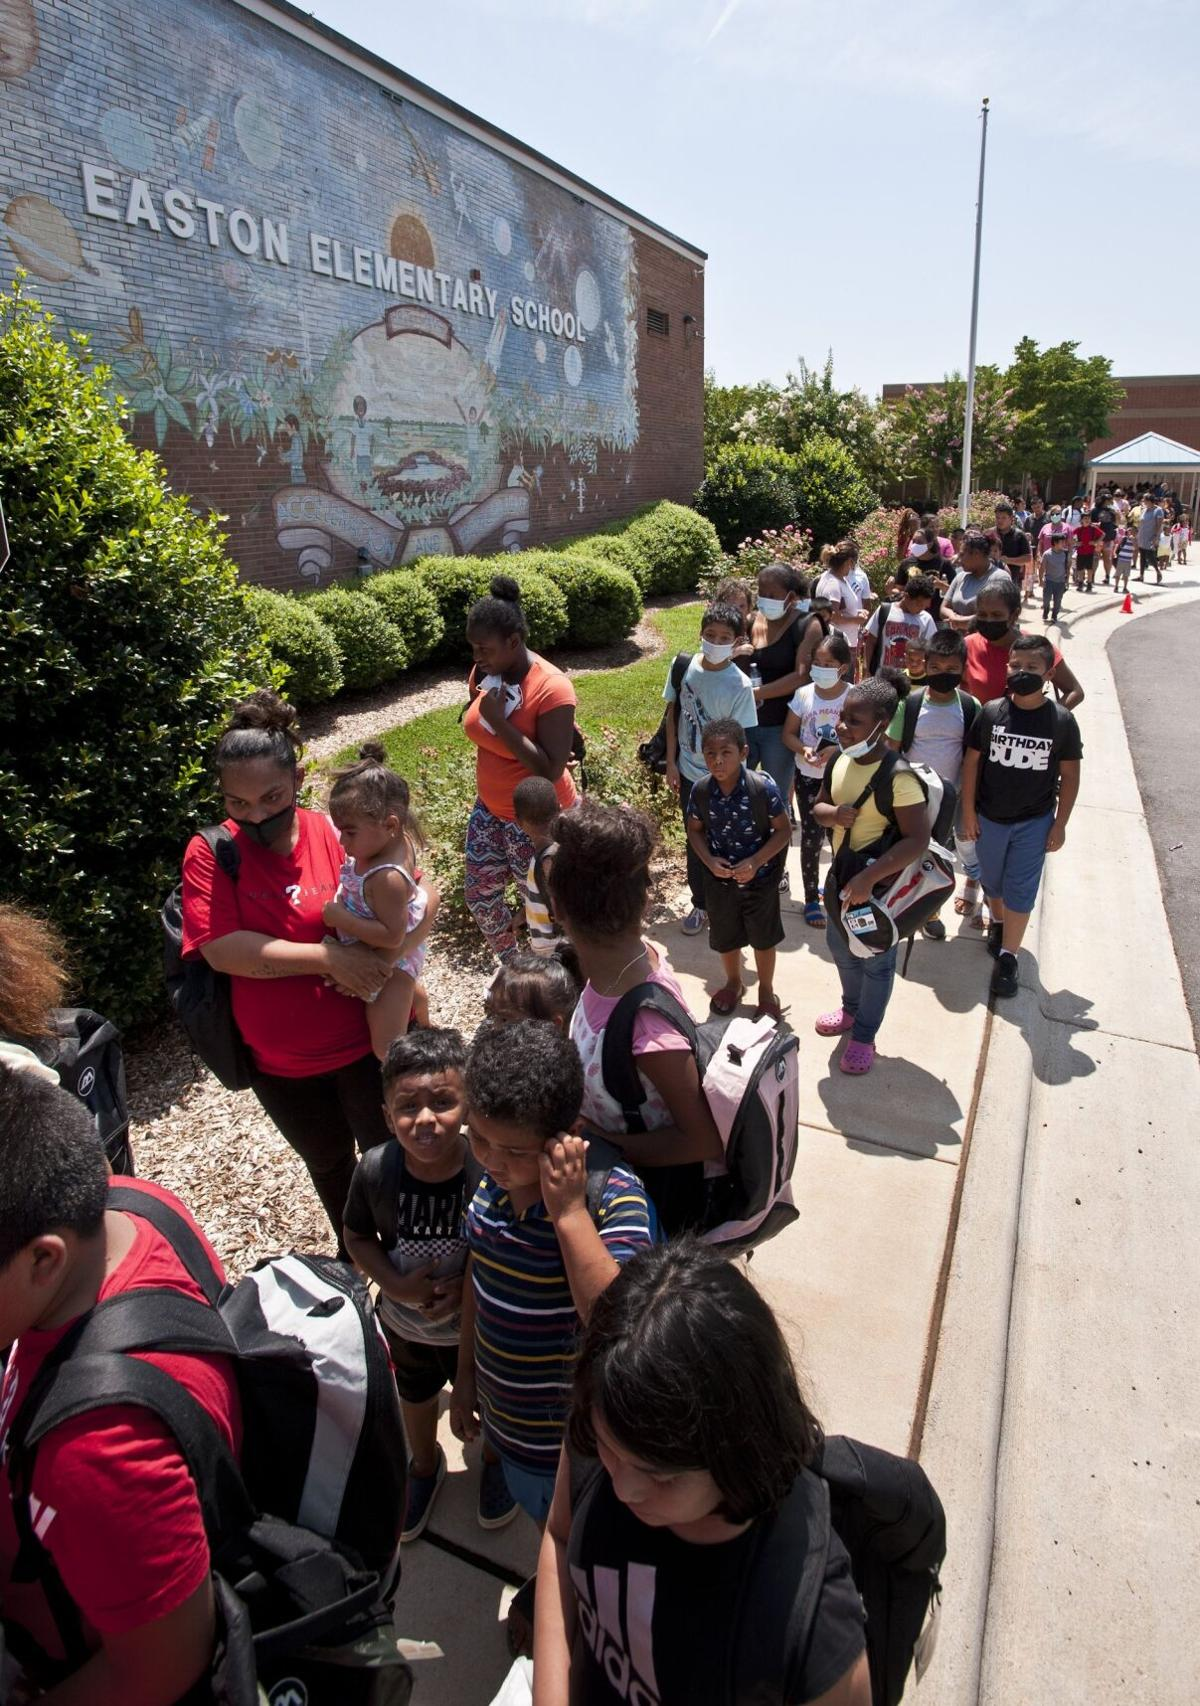 Police backpack giveaway